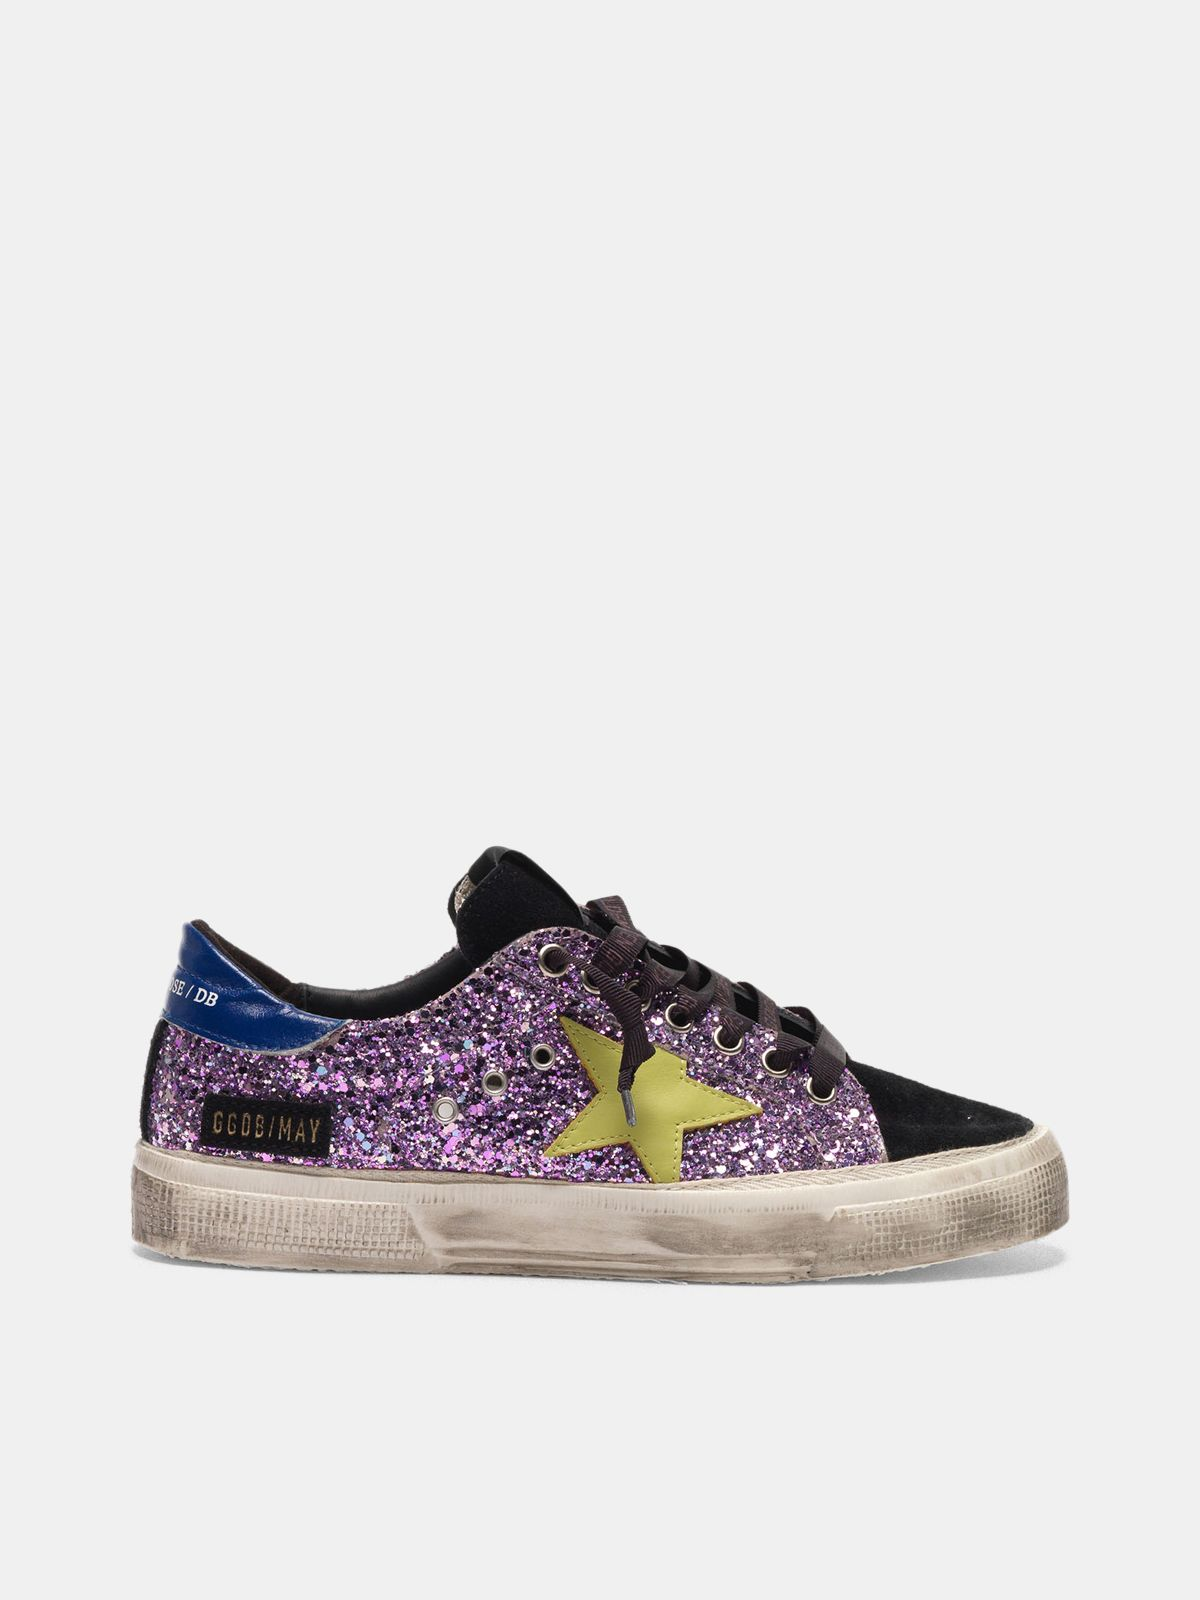 Golden Goose - May sneakers in glitter and suede leather in